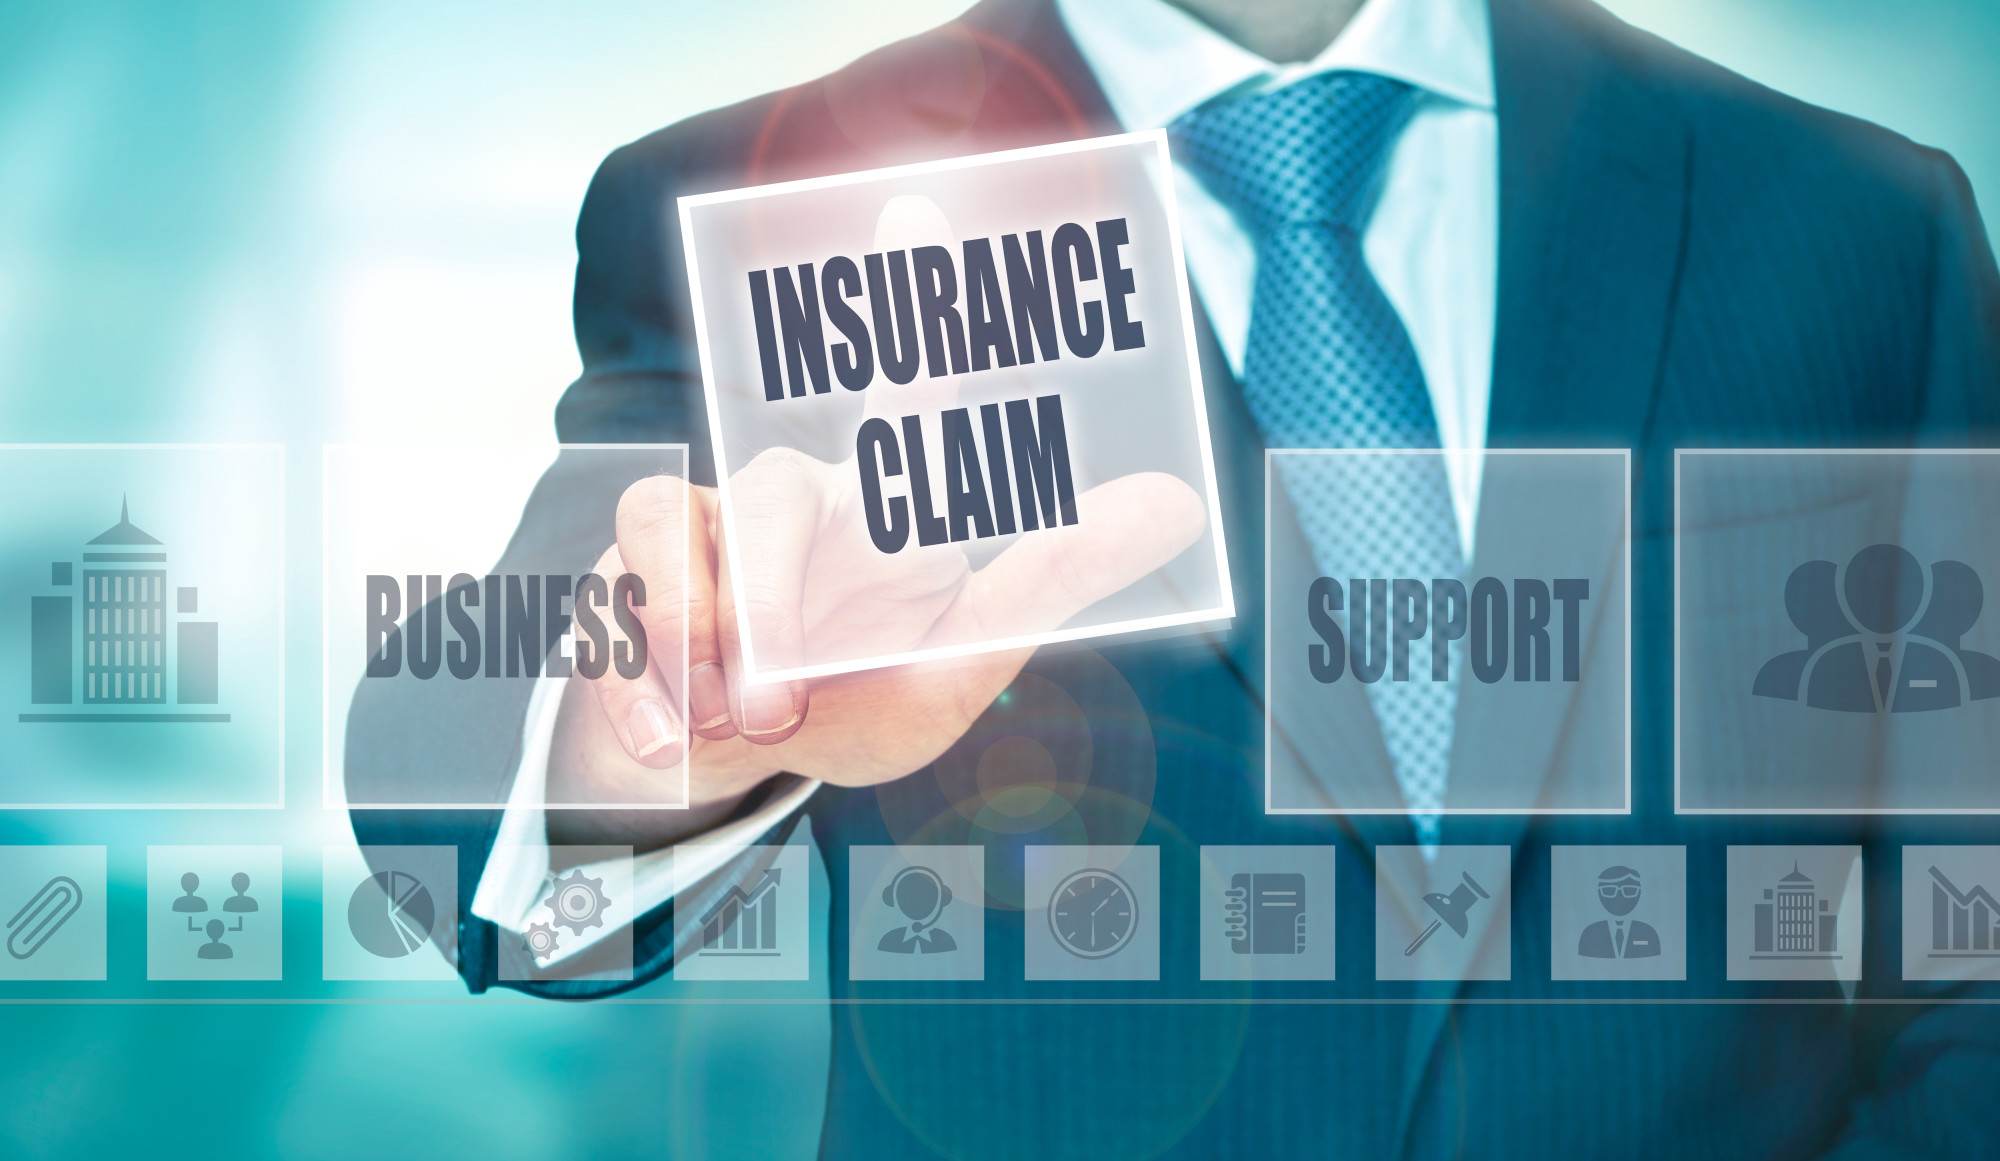 insurance claim and related text and icons